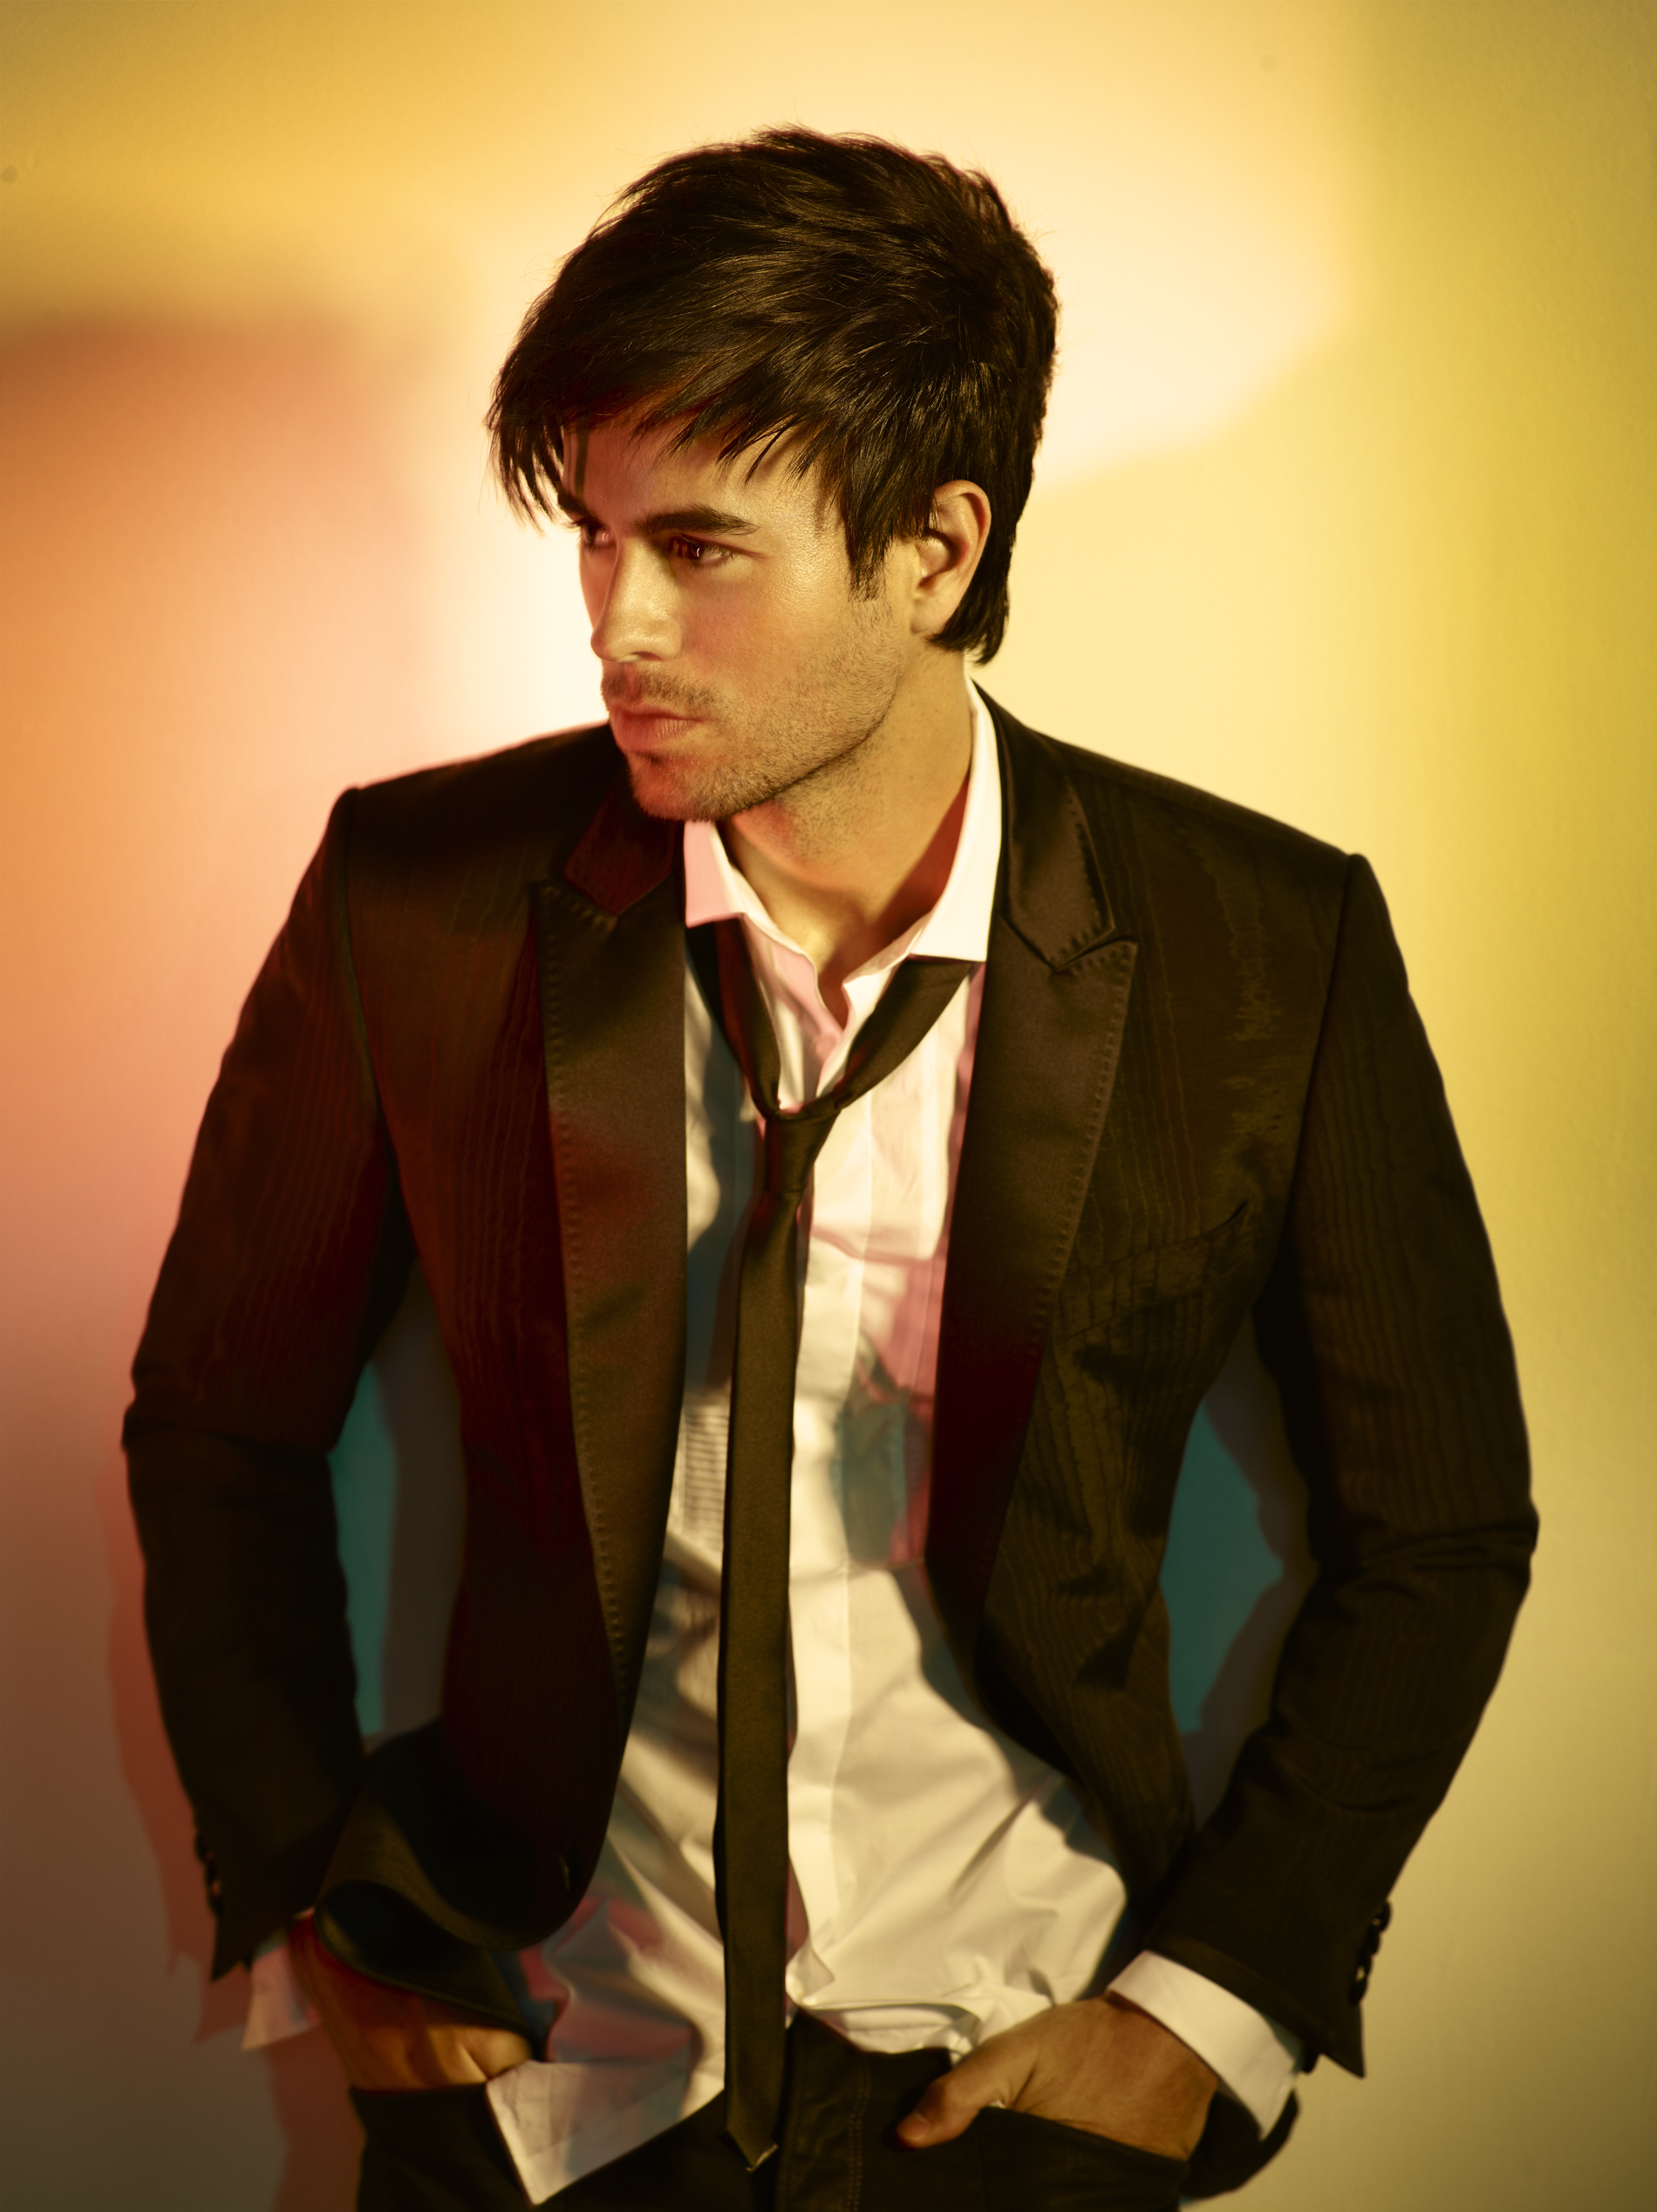 Enrique Iglesias Songwriter and Actor 56.83 Kb